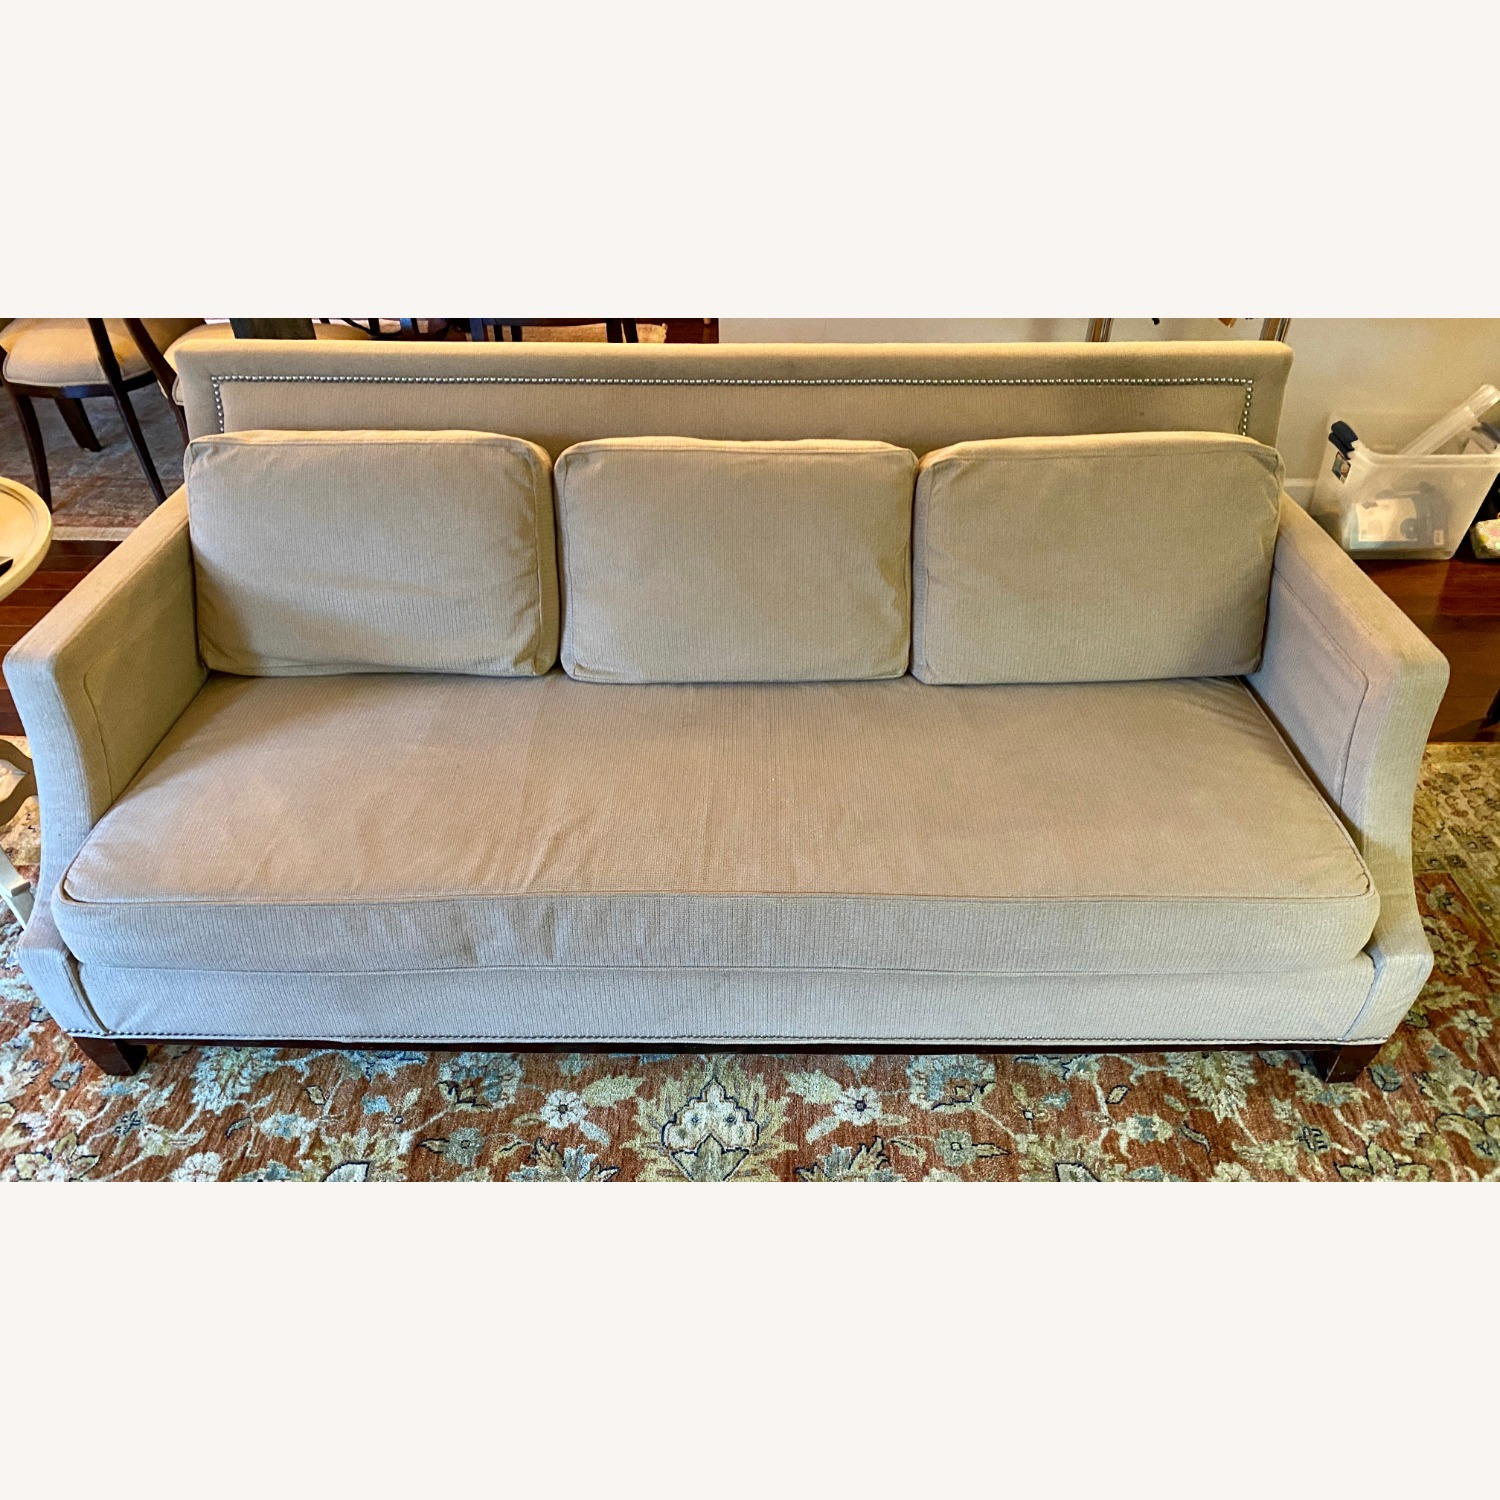 Robert Allen Design Cooper Sofa in Tan - image-1